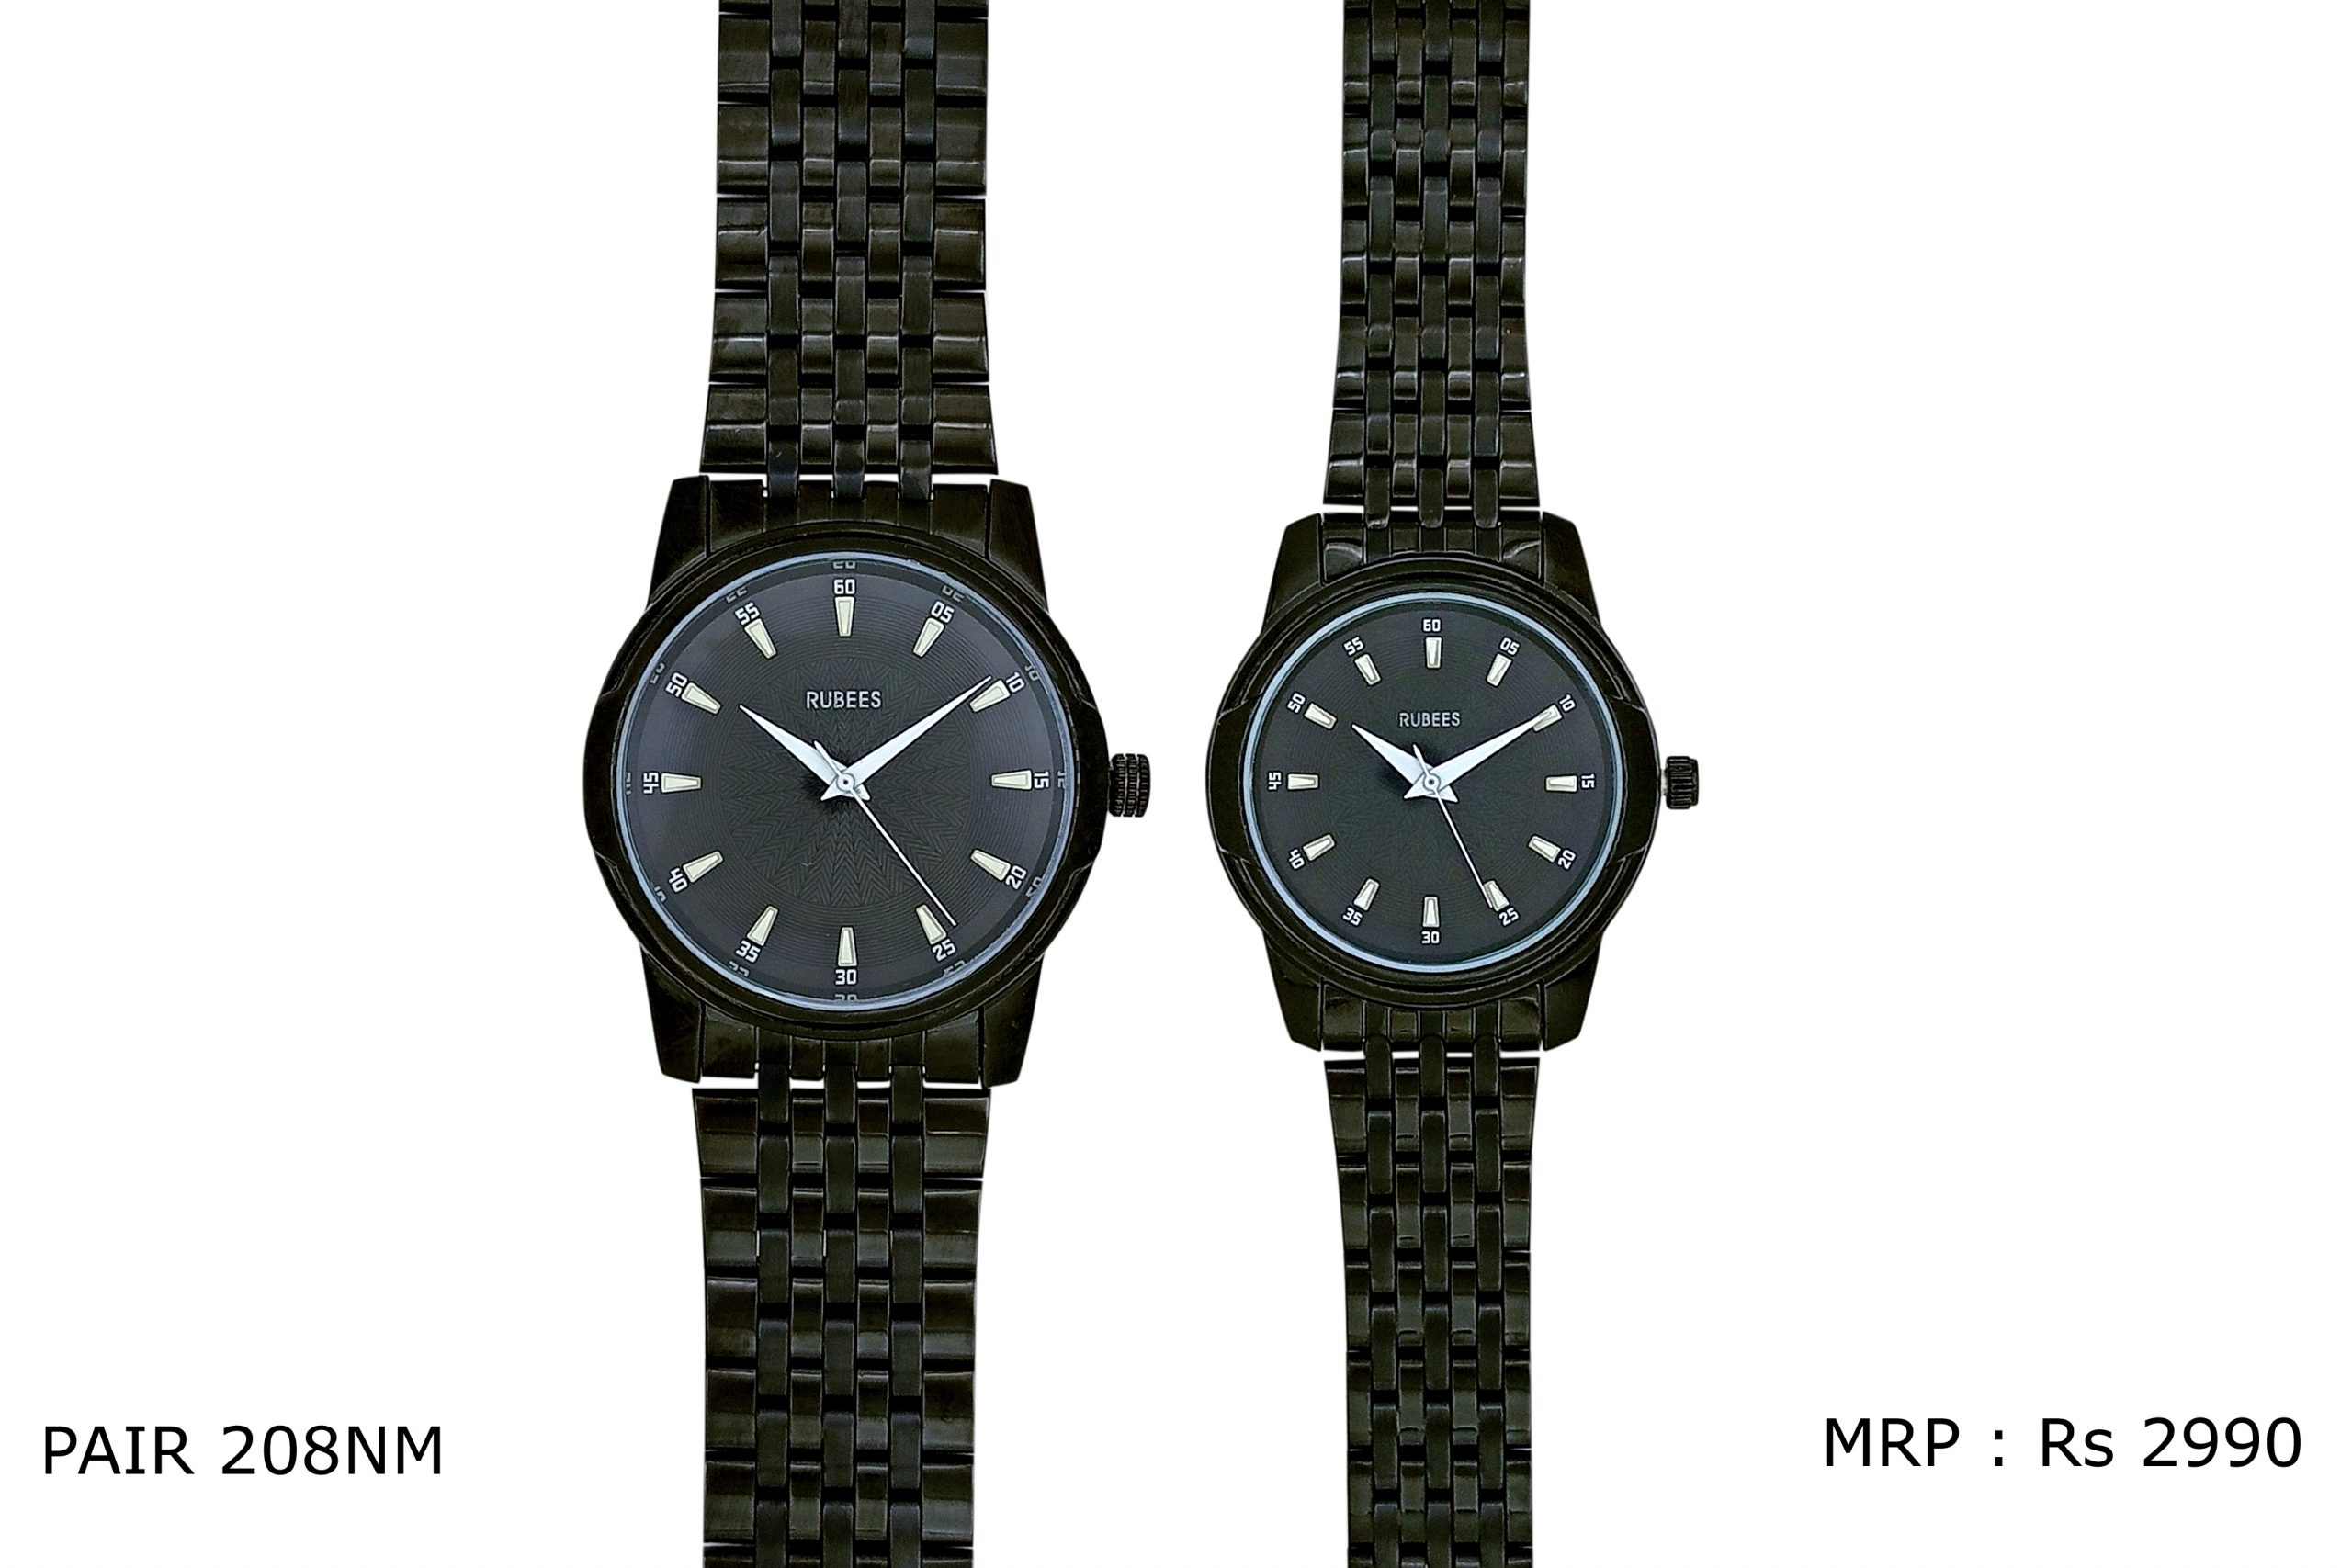 PAIR208NMG1495 BLK scaled